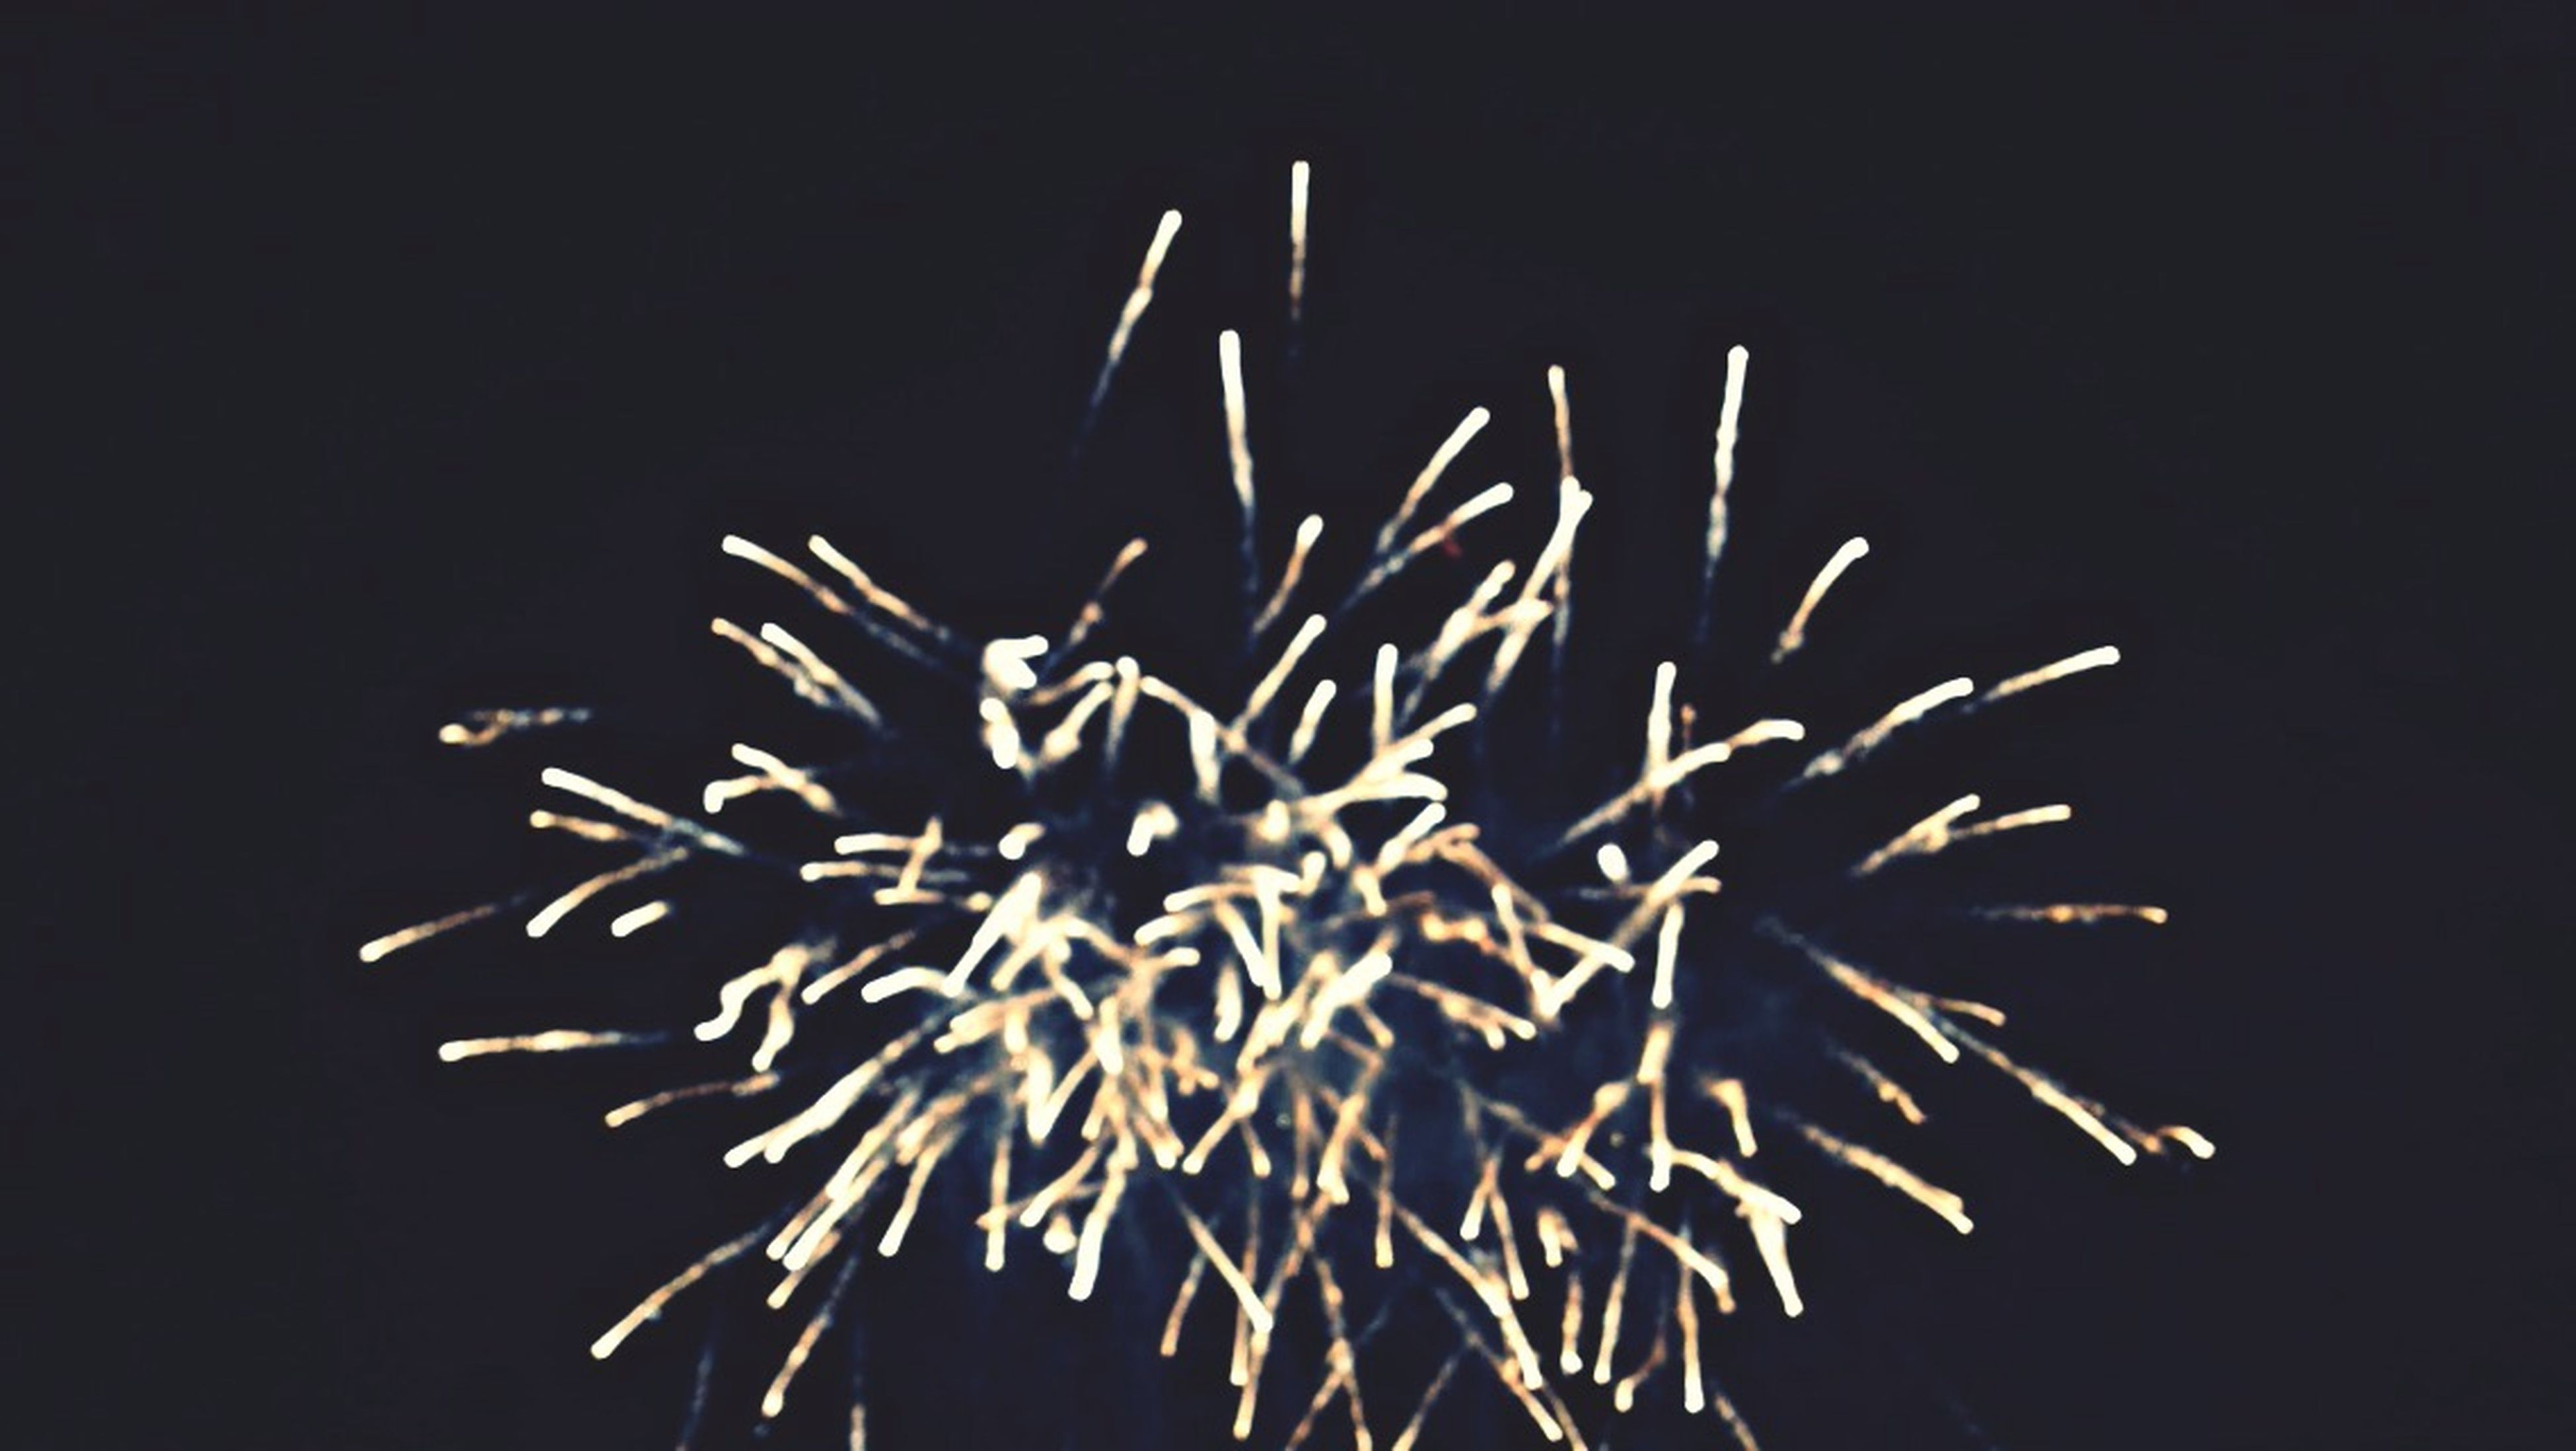 night, studio shot, black background, celebration, low angle view, close-up, no people, copy space, illuminated, firework display, glowing, exploding, outdoors, arts culture and entertainment, dark, sky, clear sky, flower, growth, nature